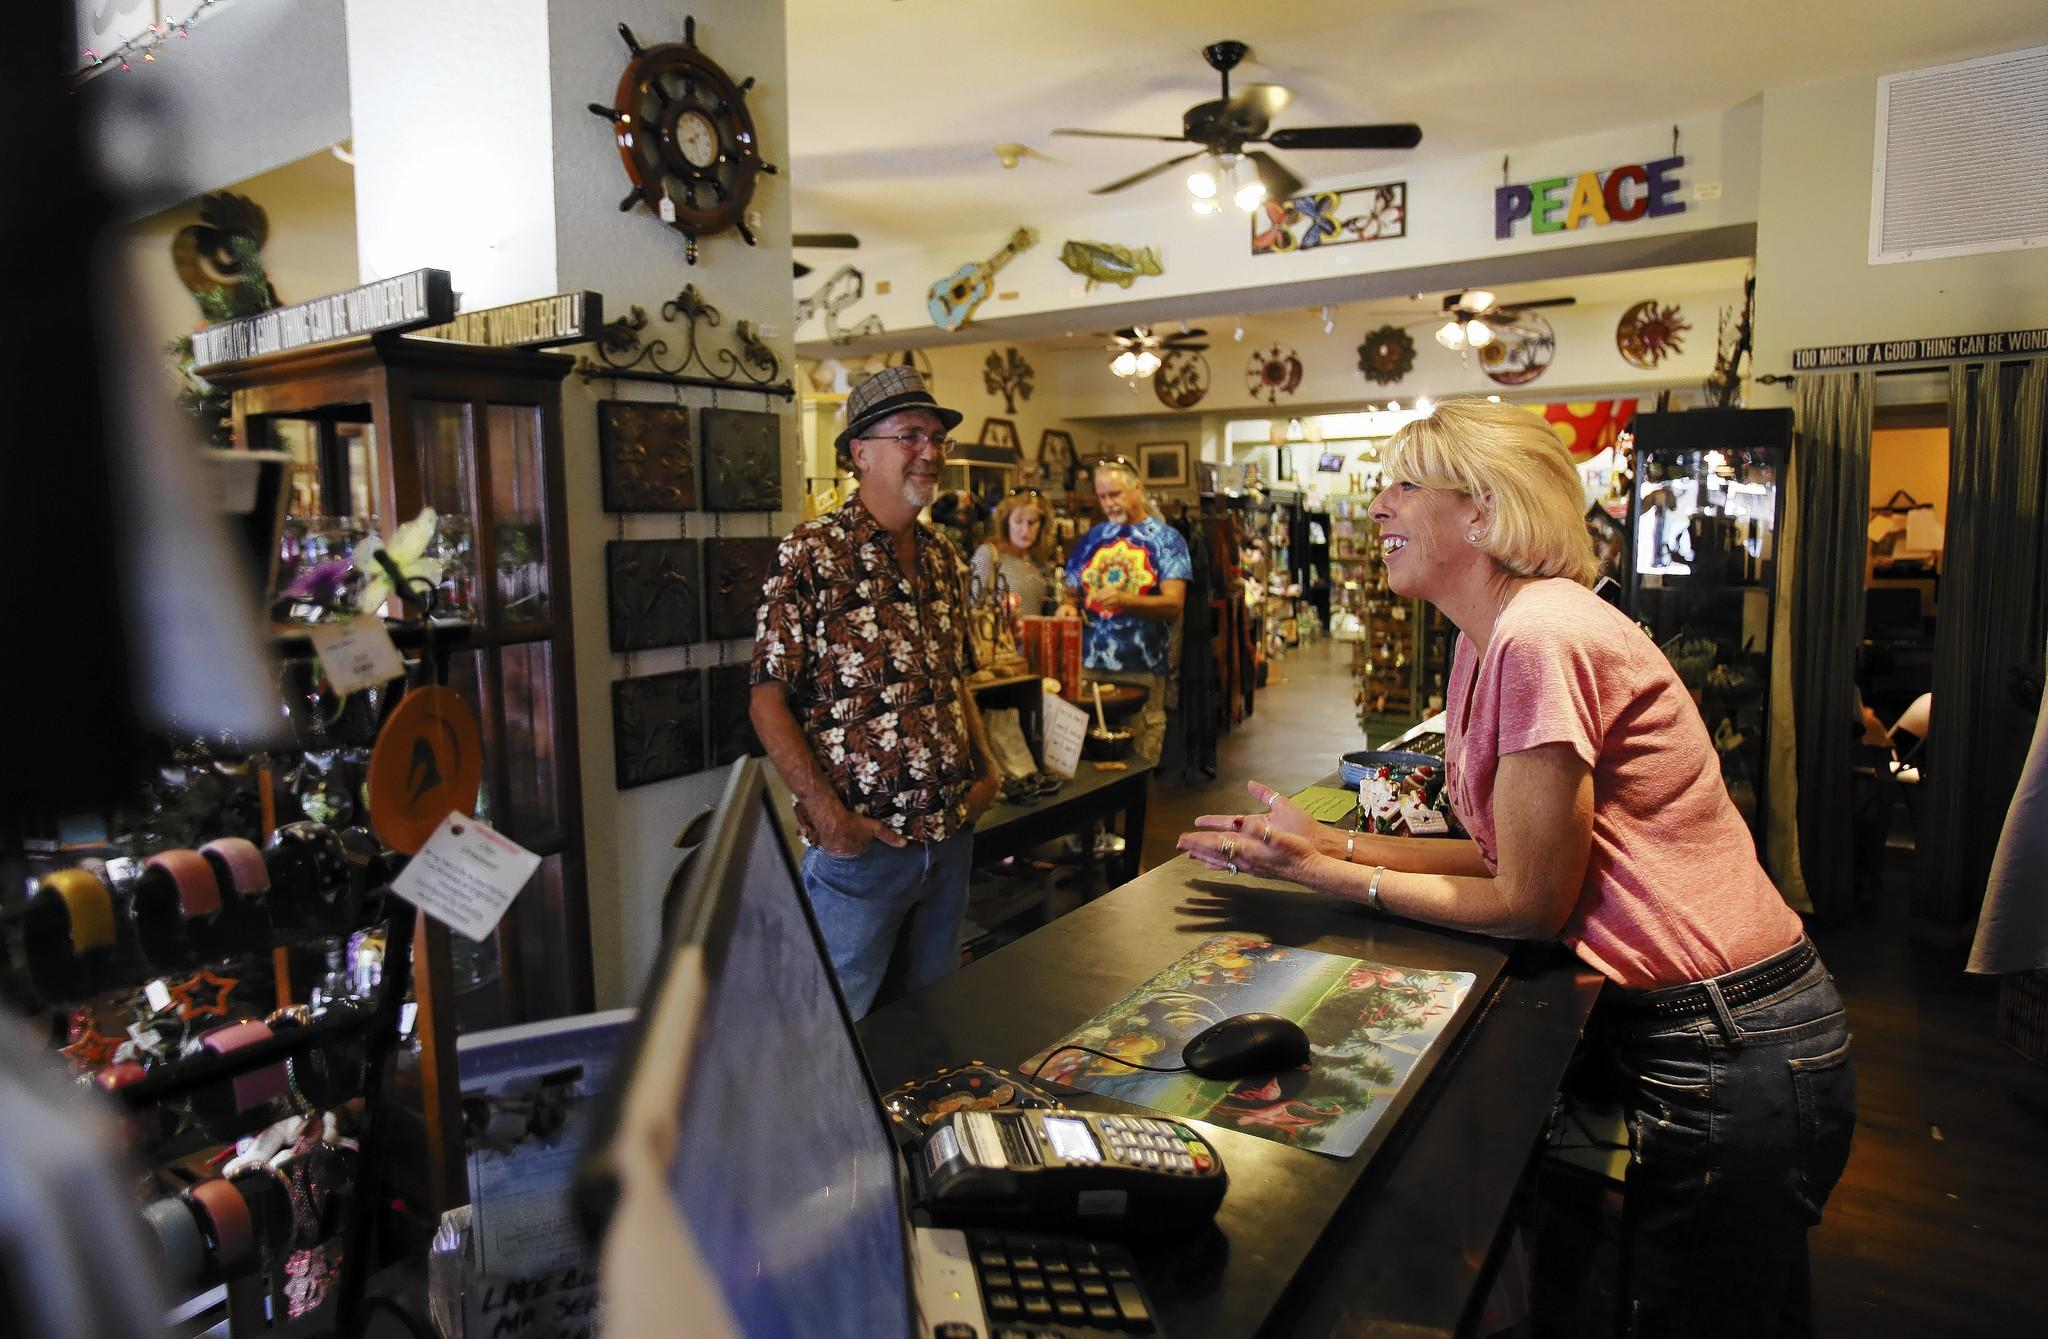 Jim and Kim Pinson, owners of Whispering Winds in downtown Mount Dora, chat at the register on Thursday, December 26, 2013.